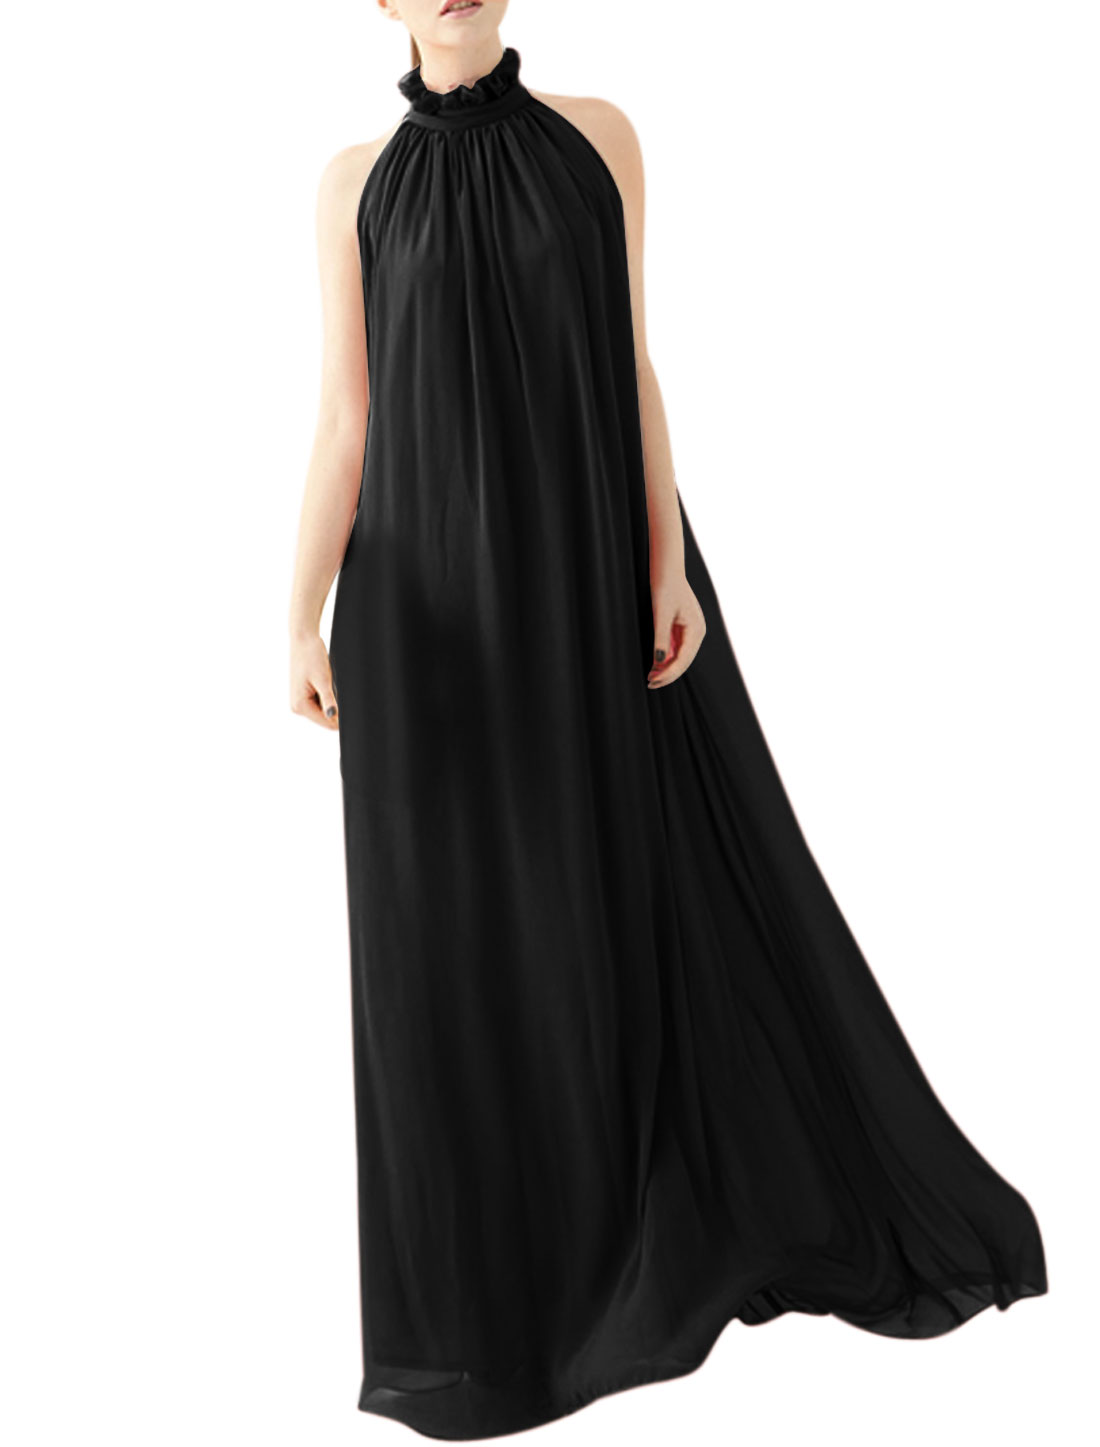 Women Mock Neck Sleeveless Semi Sheer Maxi Dress Black L